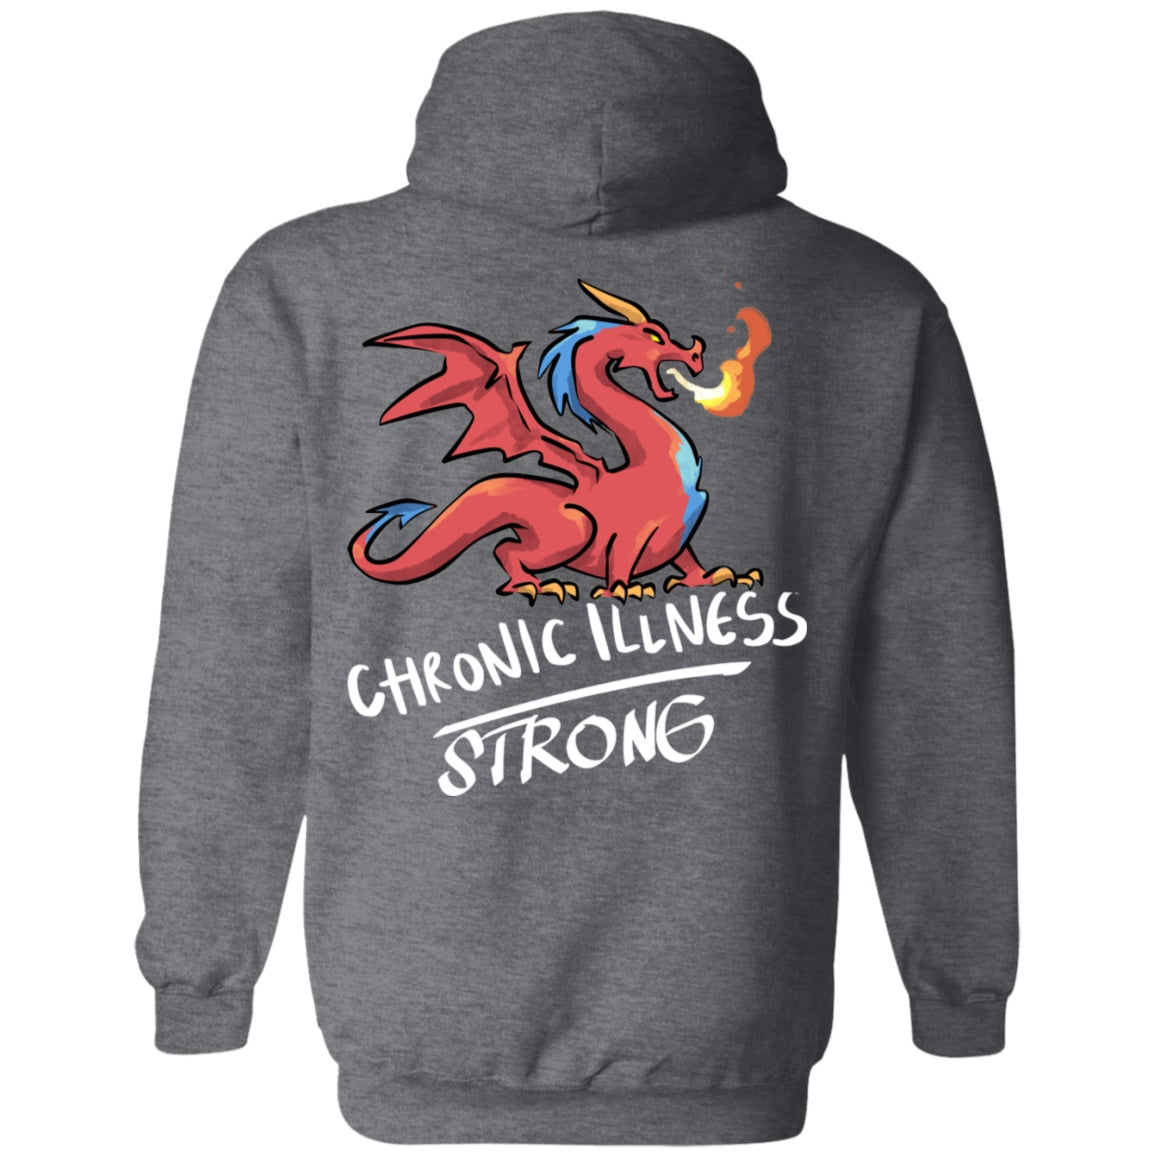 Chronic Illness Strong Dragon Pullover Hoodie 8 oz. - The Unchargeables